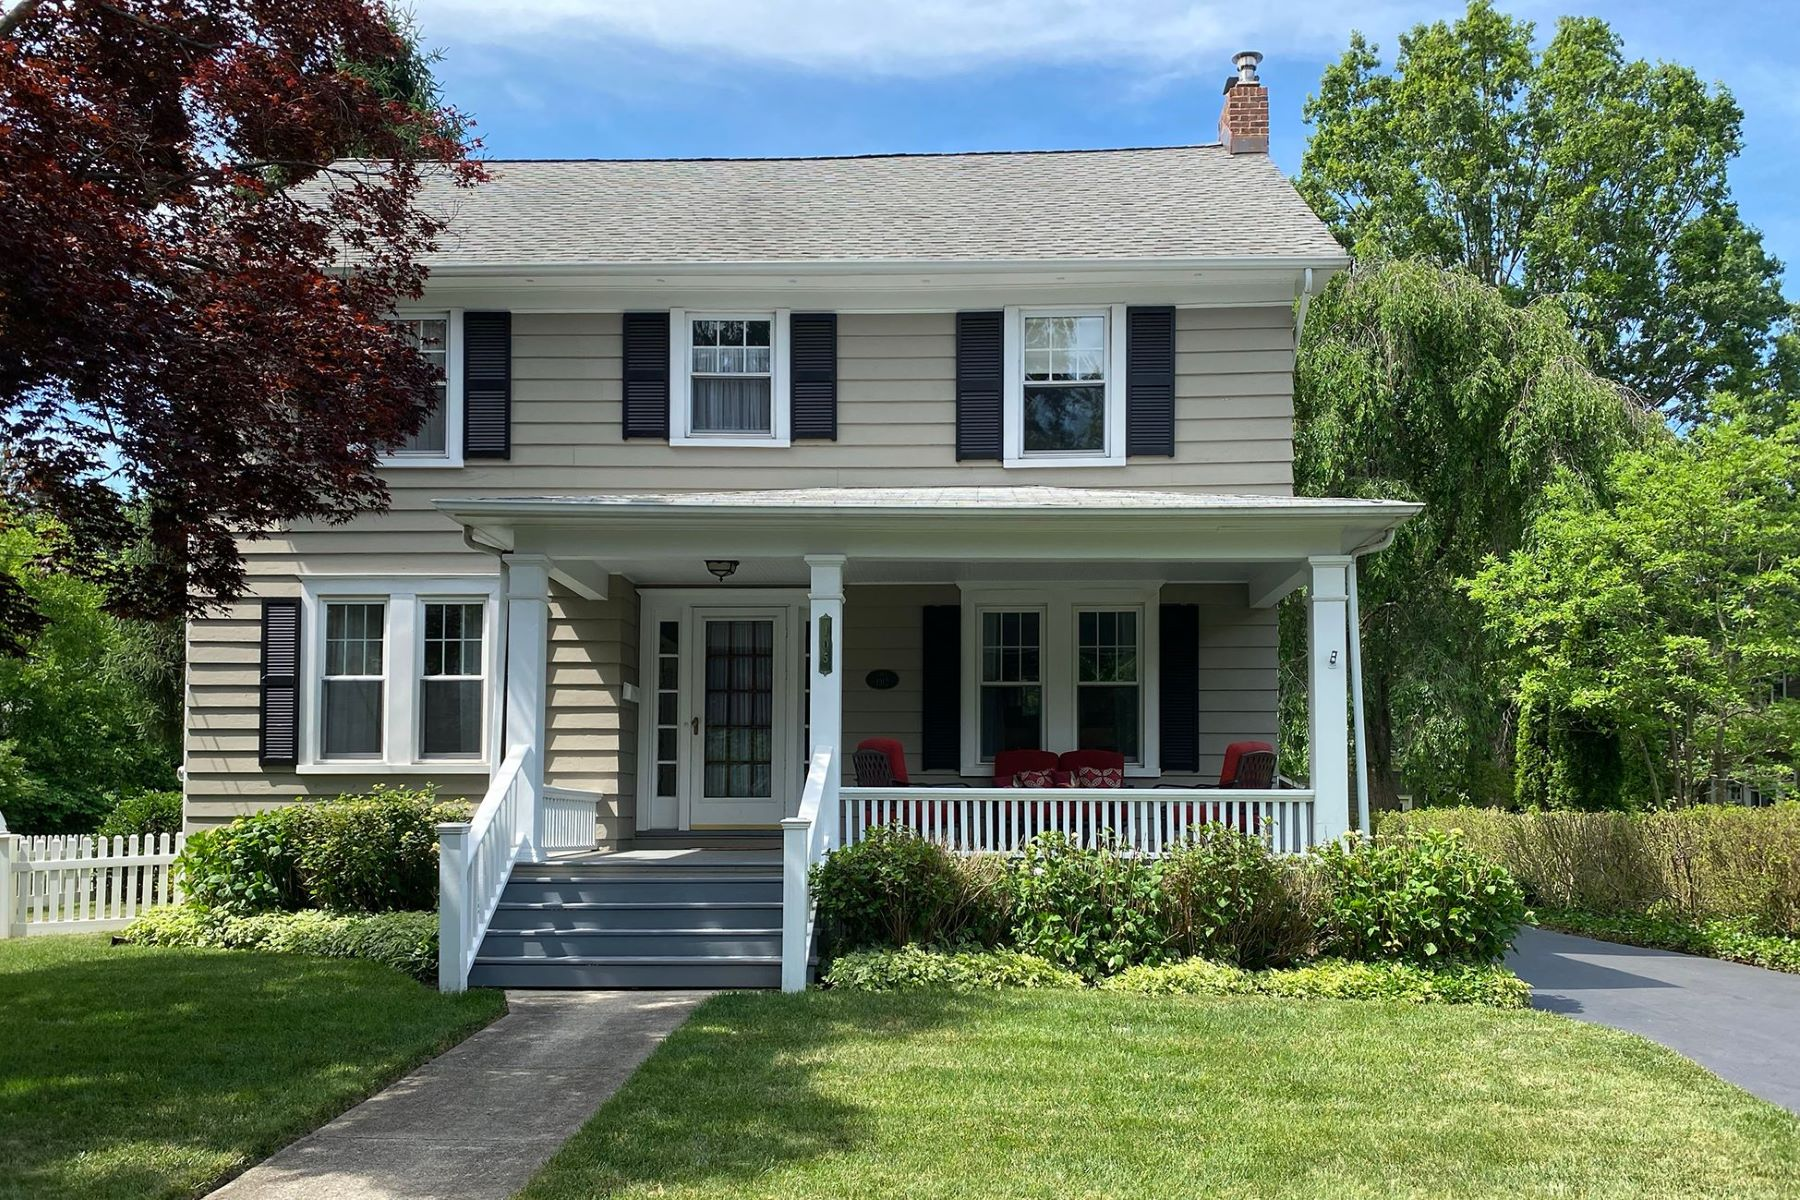 Single Family Homes for Sale at Period Home Has Smart Updates & Seamless Addition 105 West Welling Avenue, Pennington, New Jersey 08534 United States